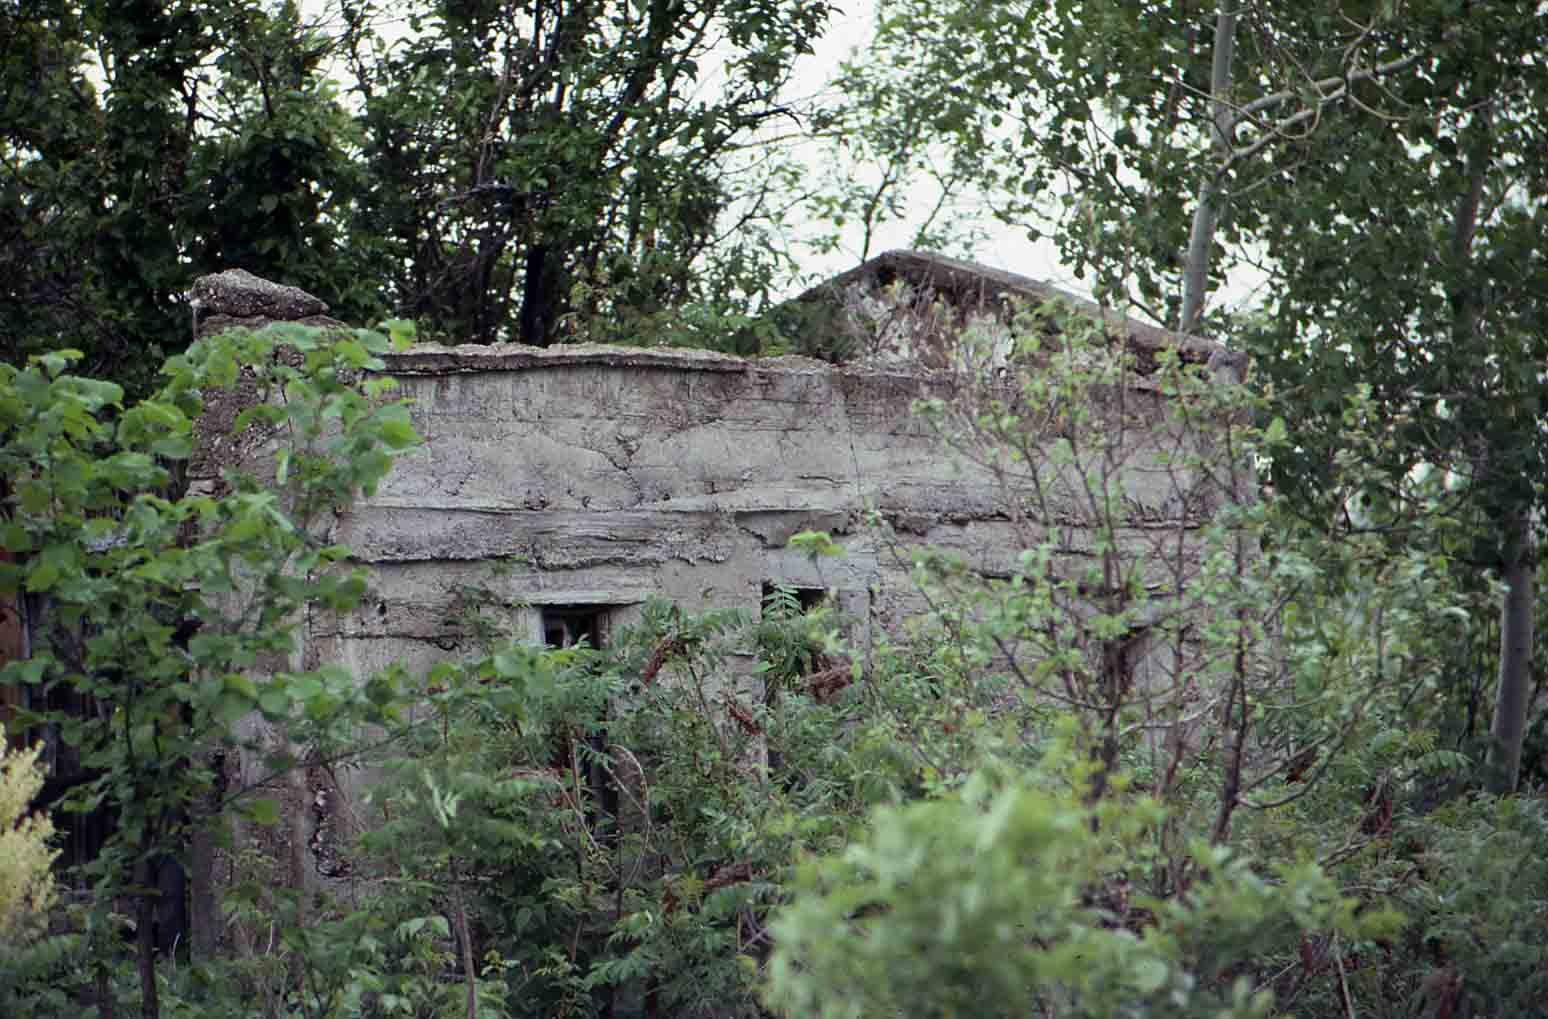 Building ruins, location unknown